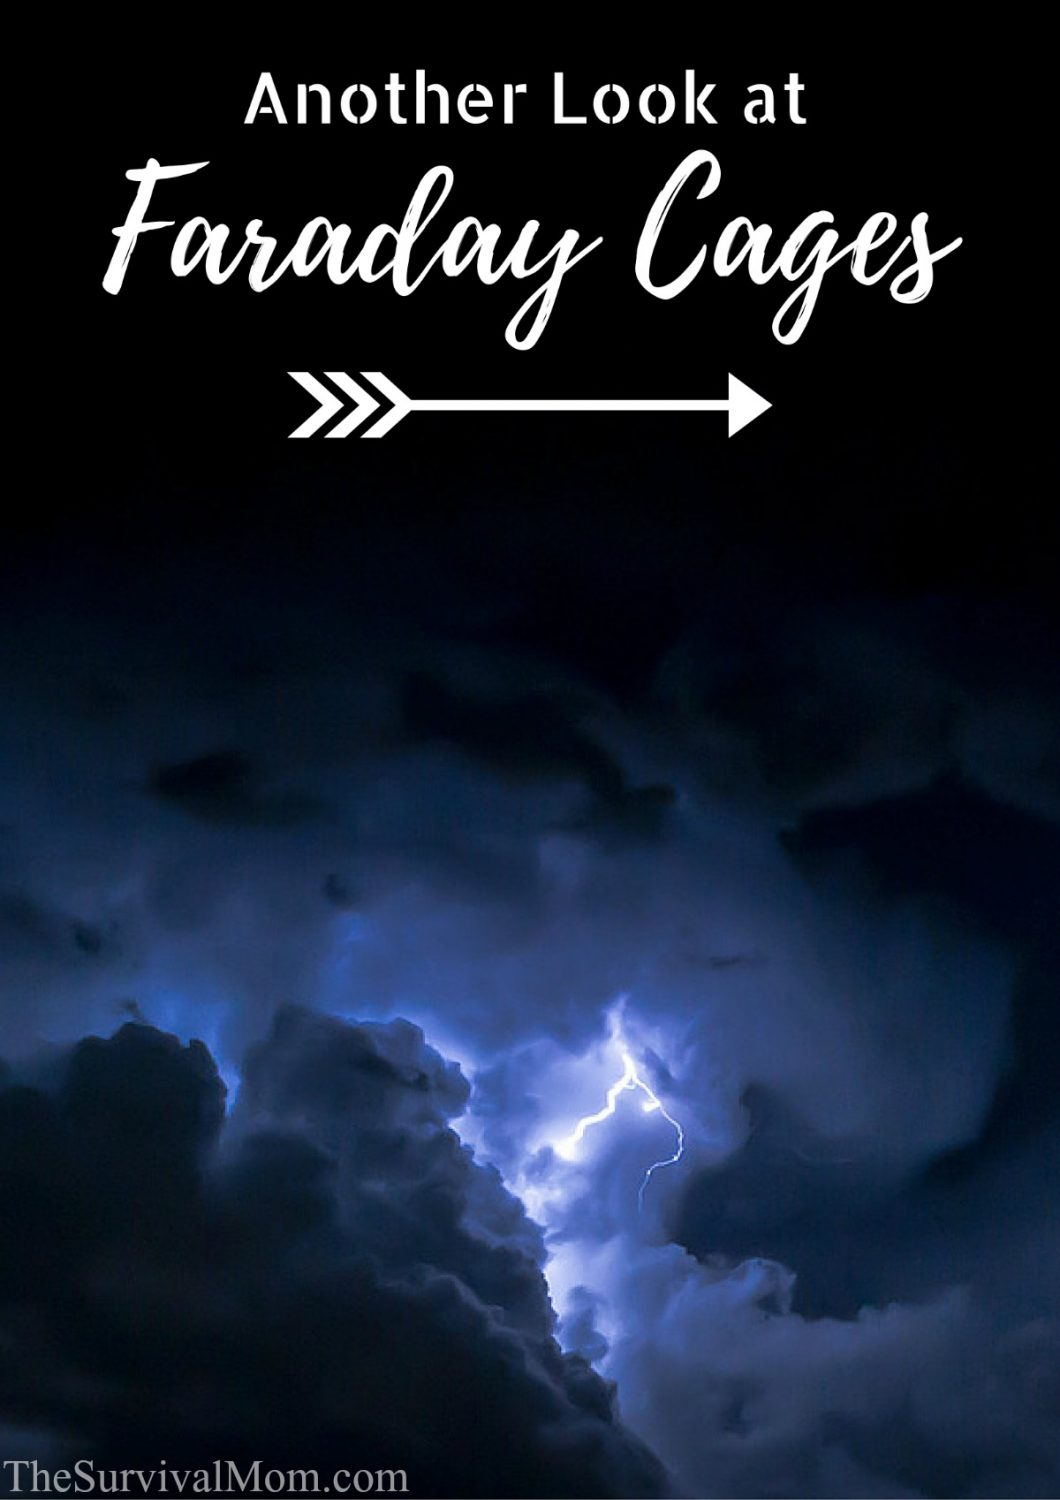 Another Look at Faraday Cages - Survival Mom